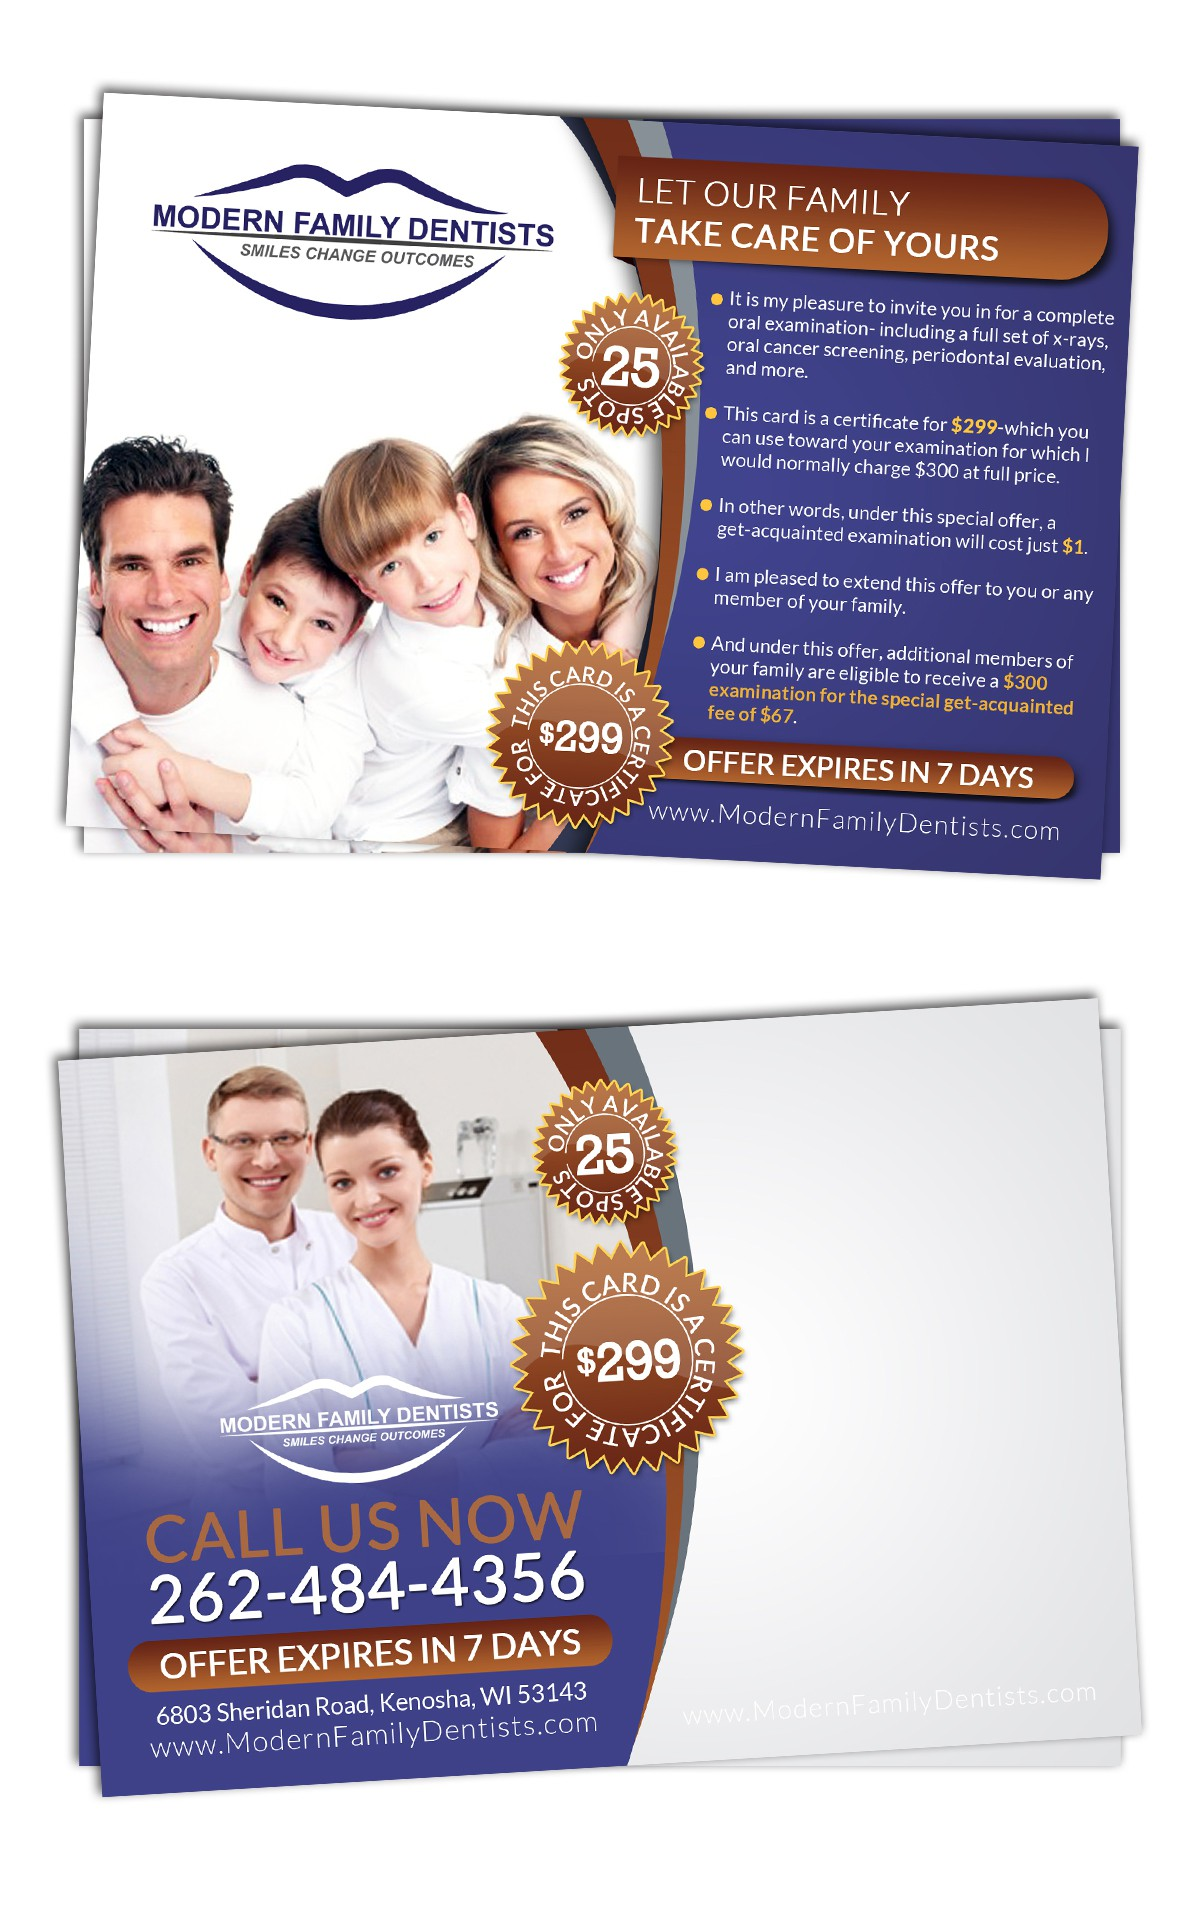 New postcard or flyer wanted for Modern Family Dentists